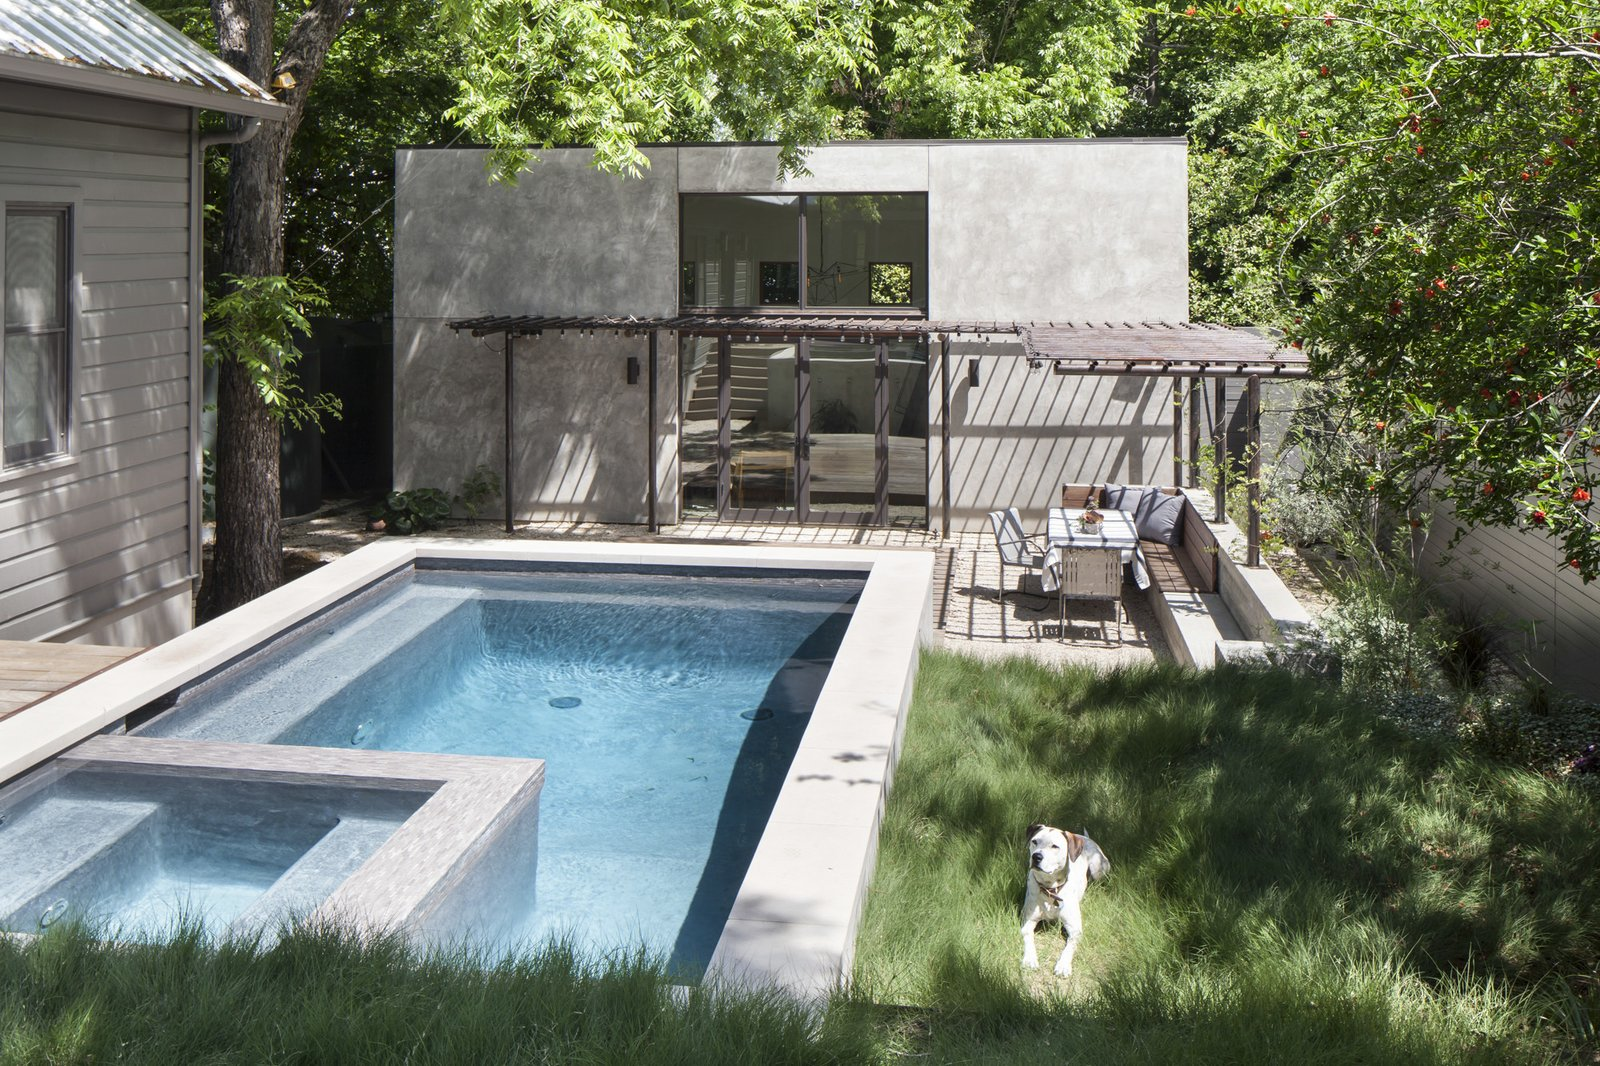 Outdoor, Grass, Concrete Pools, Tubs, Shower, Wood Patio, Porch, Deck, and Walkways A grassy area provides a spot for sunning poolside, and a steel trellis shades an integrated dining area beyond  Garner Pool & Casita